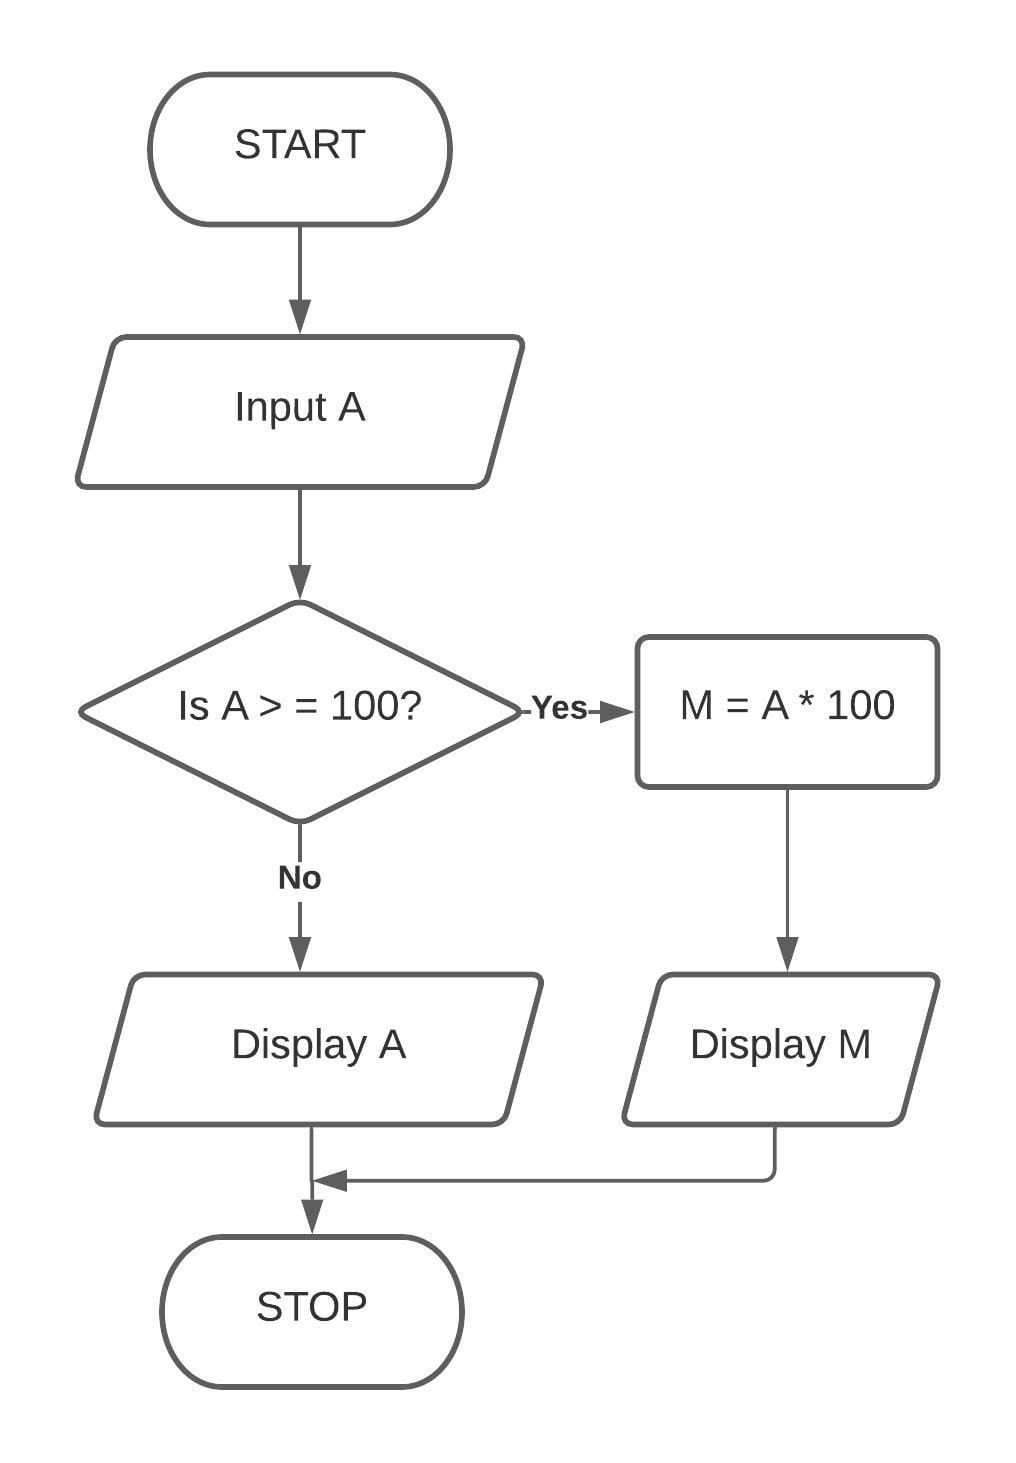 Corrected flowchart to accept the length in centimeters and express it in metres (if the length exceeds 100 centimeters or more), otherwise in centimeters. Class 7 ICSE Understanding Computer Studies